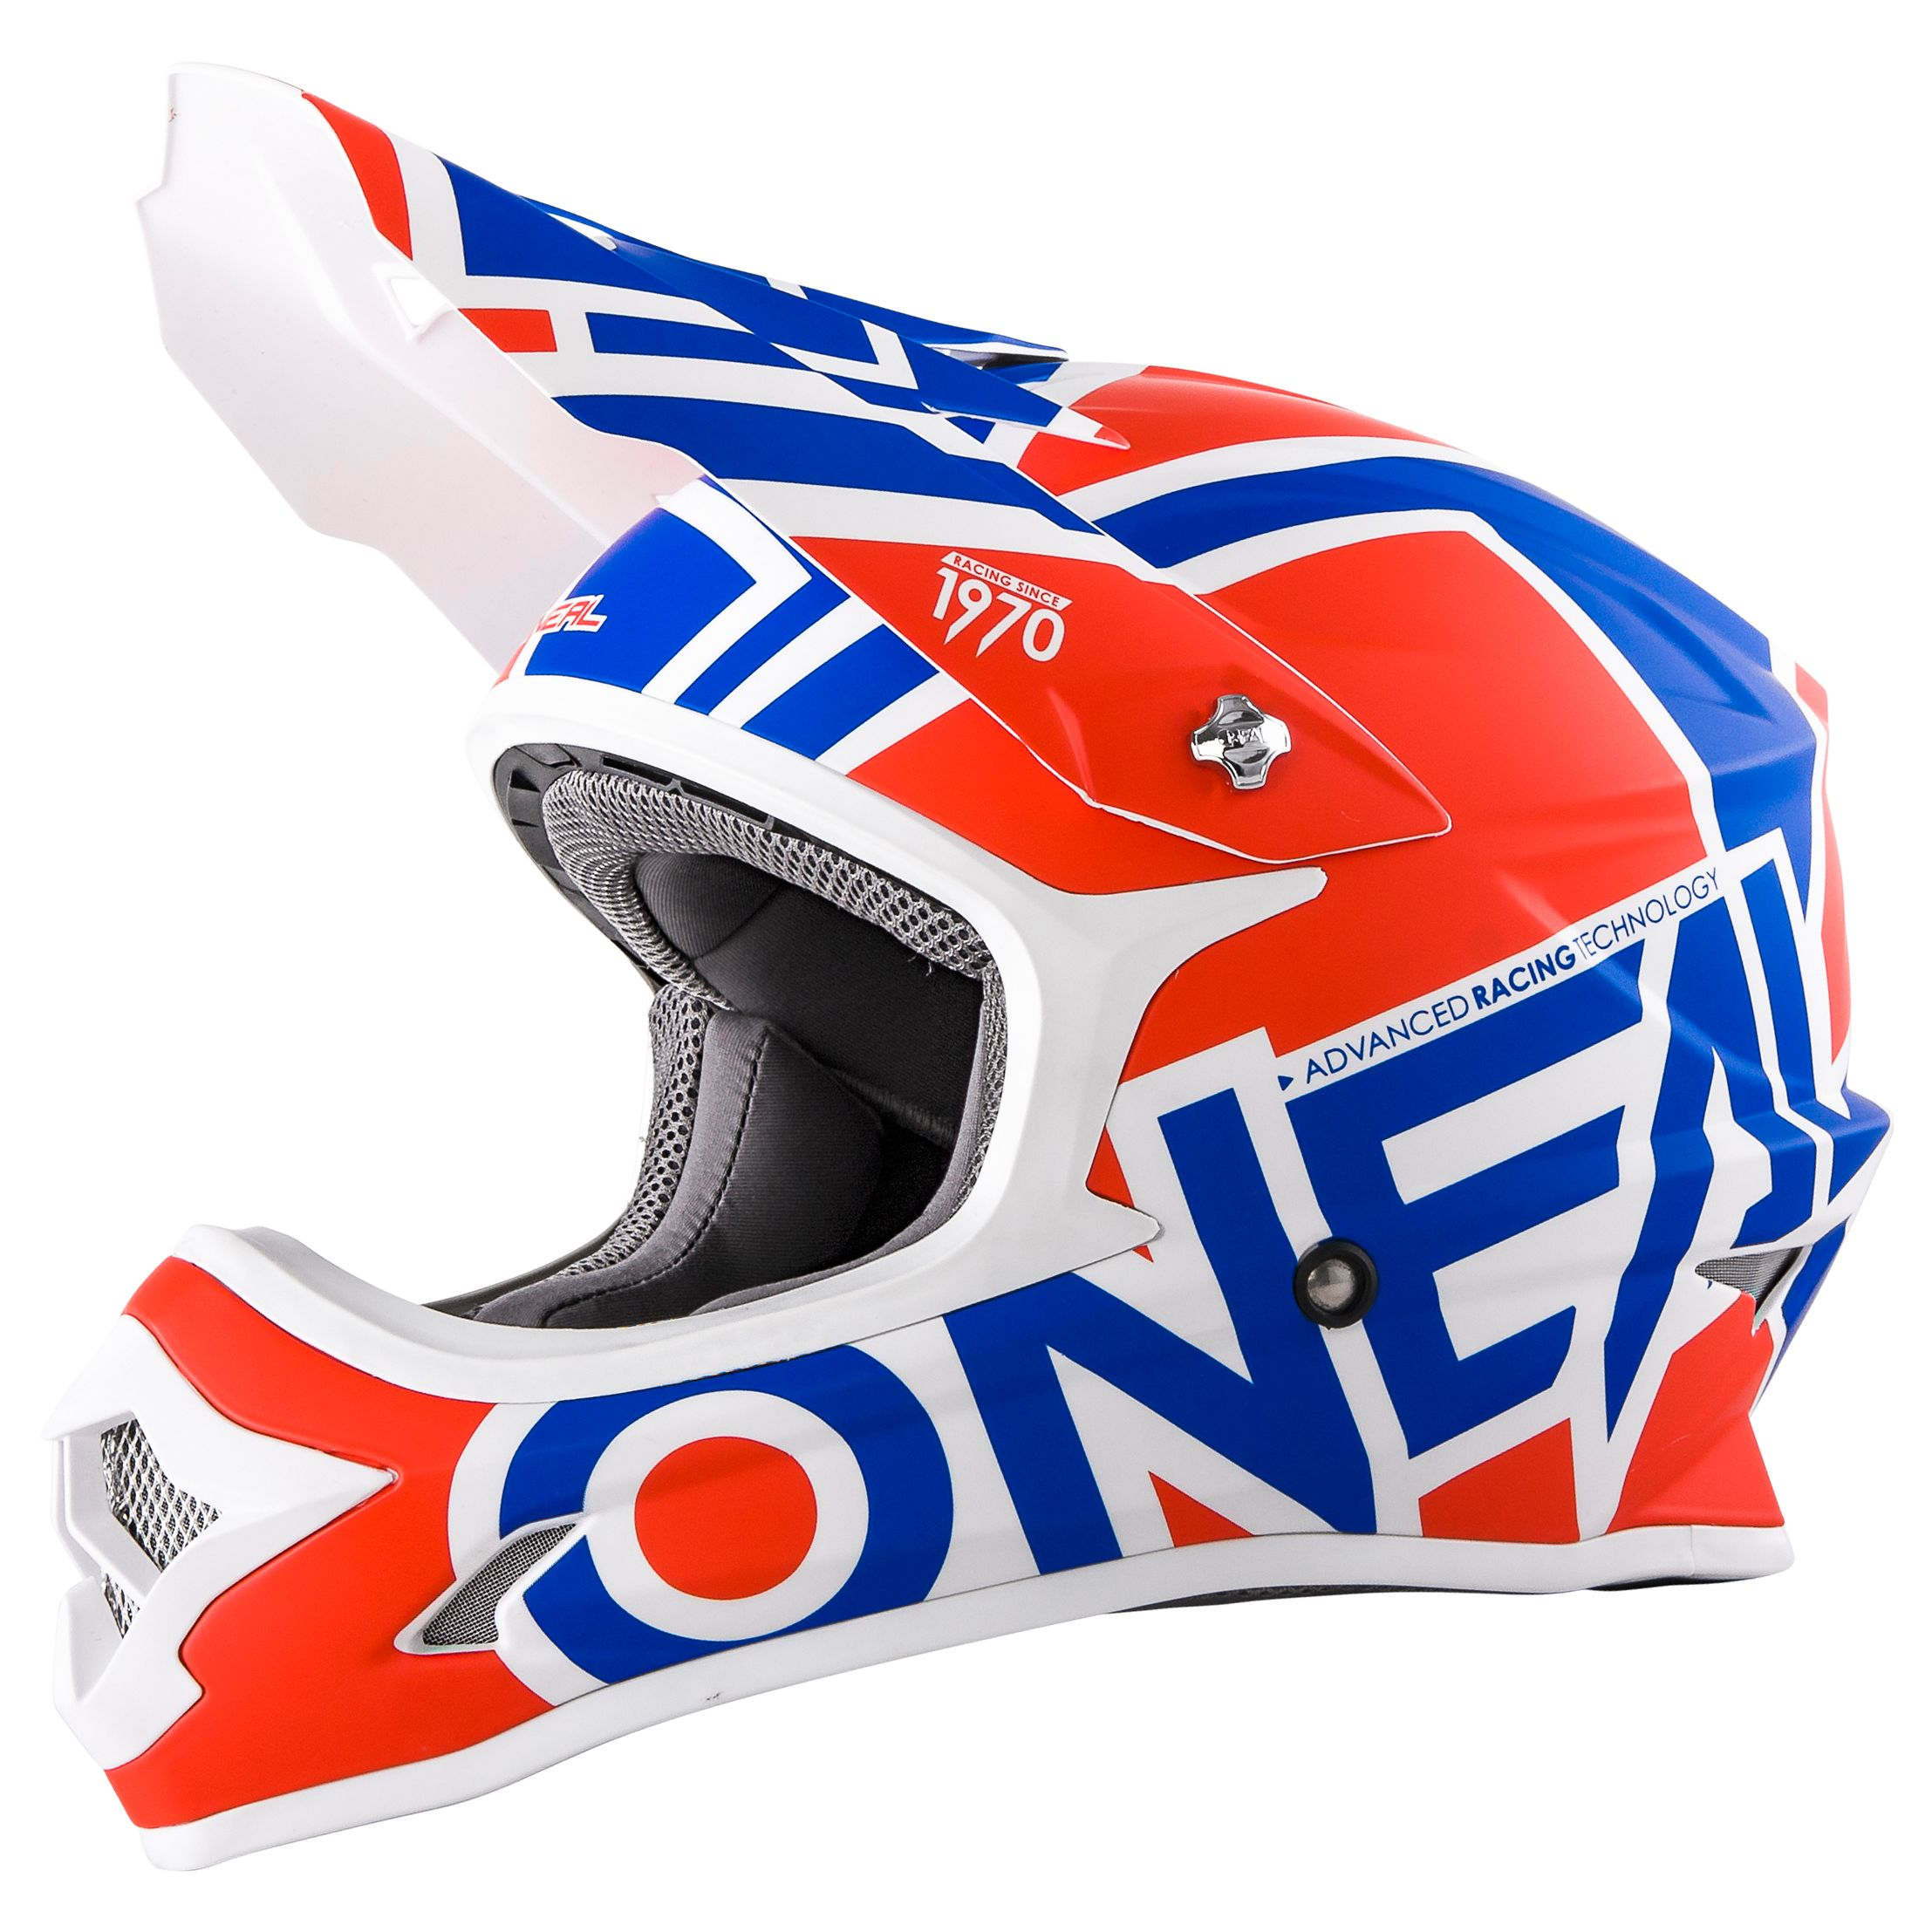 Casque Cross O'neal Series 3 Radium Rouge Bleu Blanc (mat)